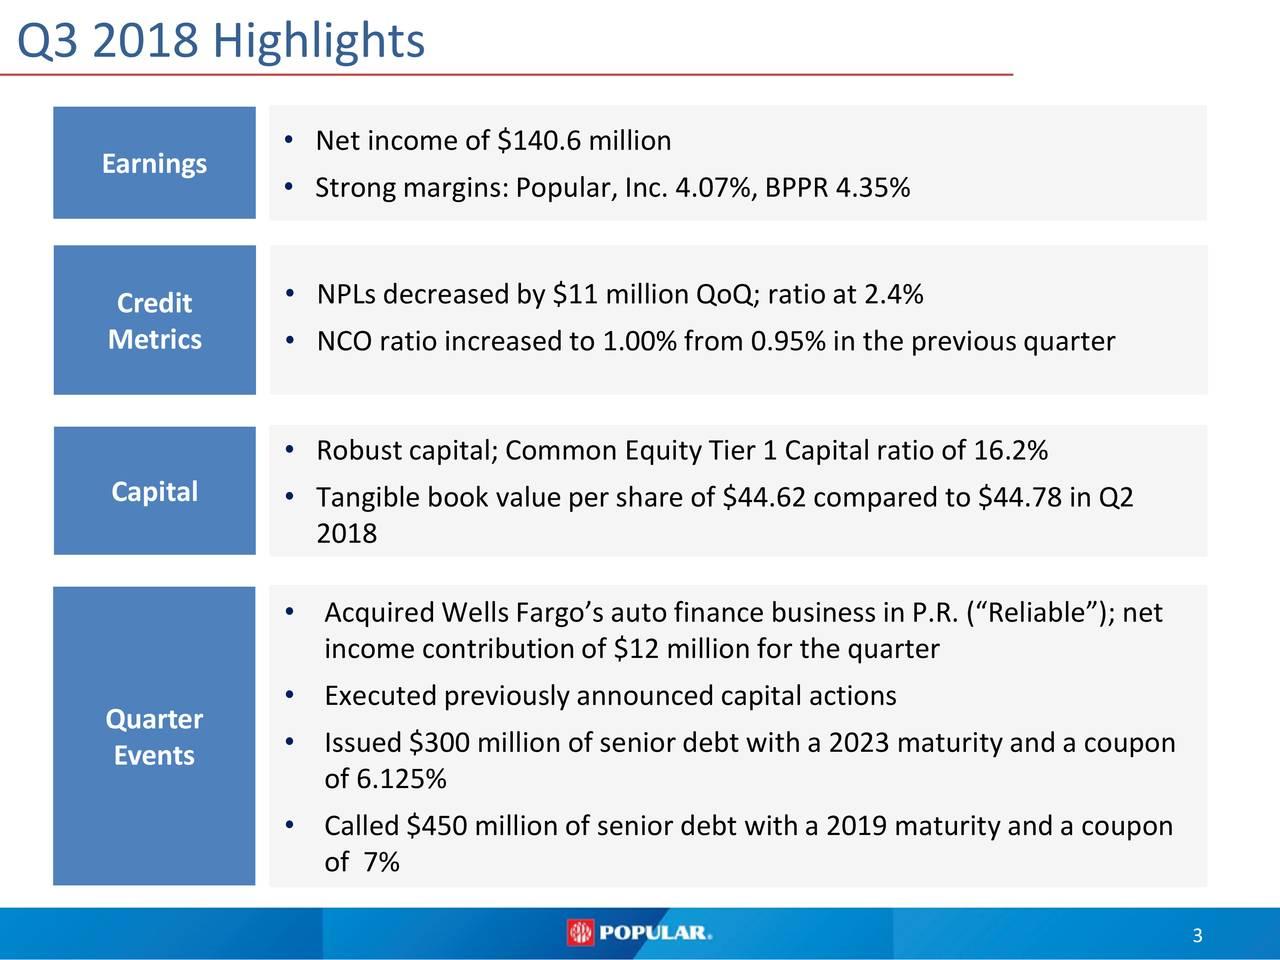 "• Net income of $140.6 million Earnings • Strong margins:Popular, Inc. 4.07%, BPPR 4.35% Credit • NPLs decreased by $11 million QoQ; ratio at 2.4% Metrics • NCO ratio increased to 1.00% from 0.95% in the previous quarter • Robust capital; Common Equity Tier 1 Capital ratio of 16.2% Capital • Tangible book value per share of $44.62 compared to $44.78 in Q2 2018 • Acquired Wells Fargo's auto finance business in P.R. (""Reliable""); net income contribution of $12 million for the quarter • Executed previously announced capital actions Quarter • Issued $300 million of senior debt with a 2023 maturity and a coupon Events of 6.125% • Called $450 million of senior debt with a 2019 maturity and a coupon of 7% 3"